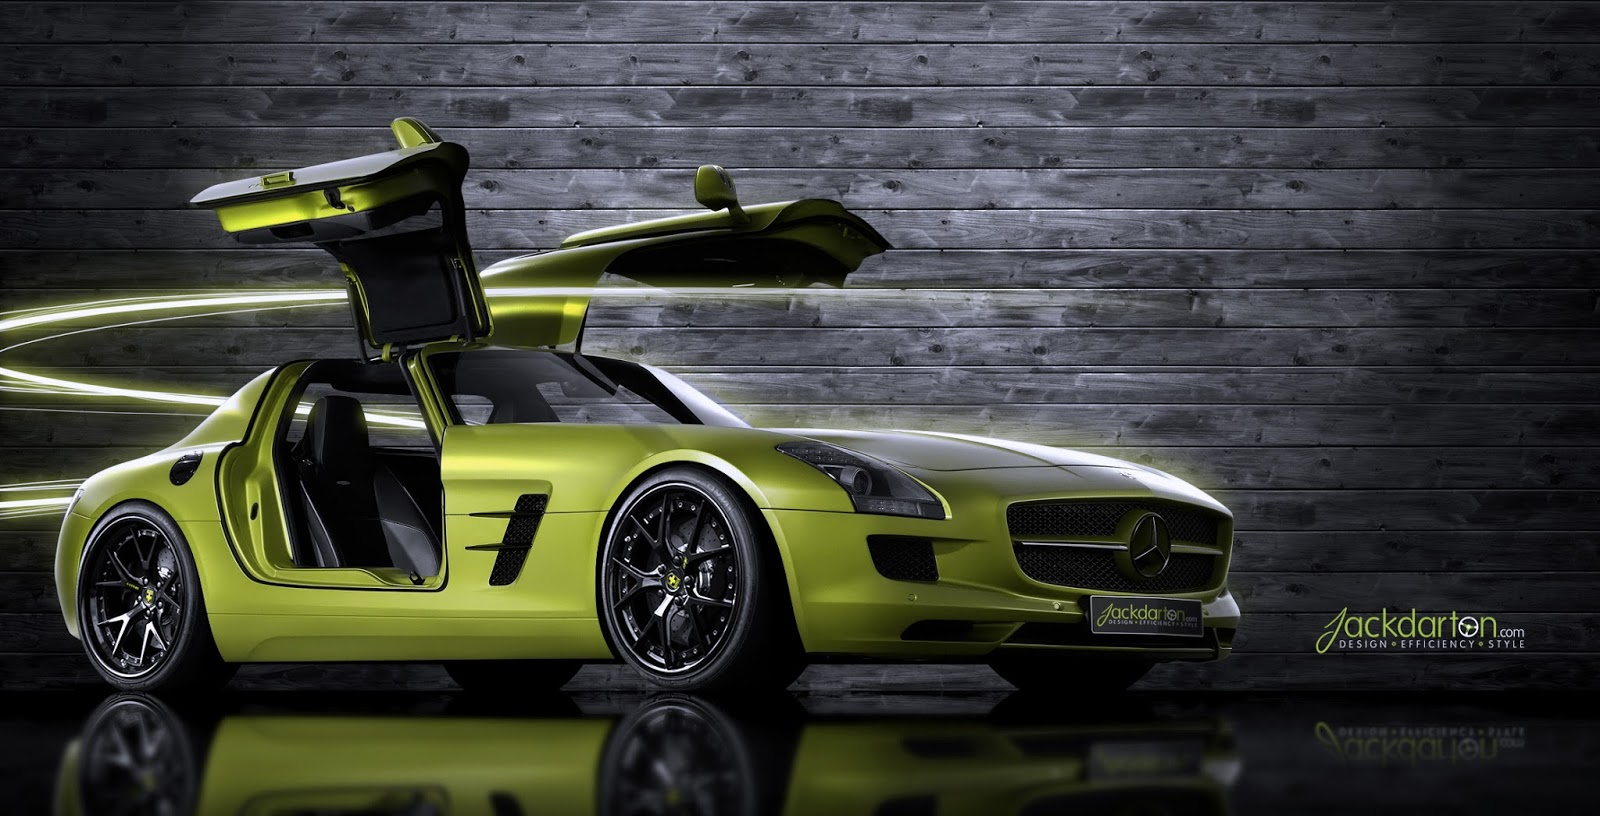 Cool Hd Wallpapers 1080p Cars